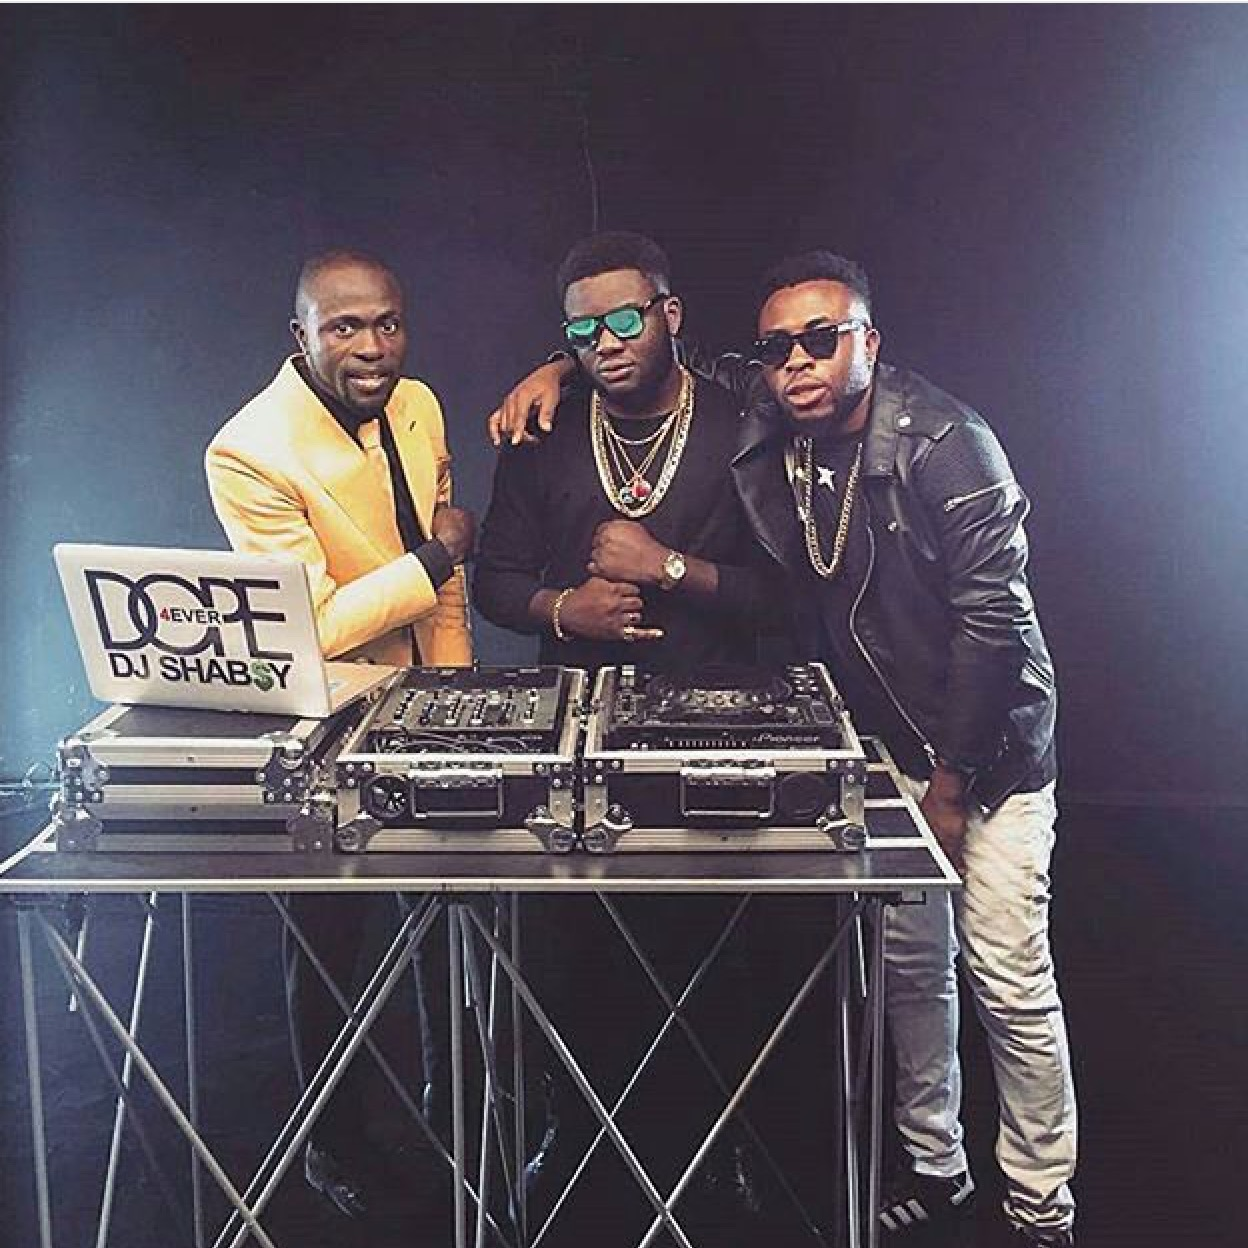 Major Matt, Samklef & DJ Shabsy set to premiere new single